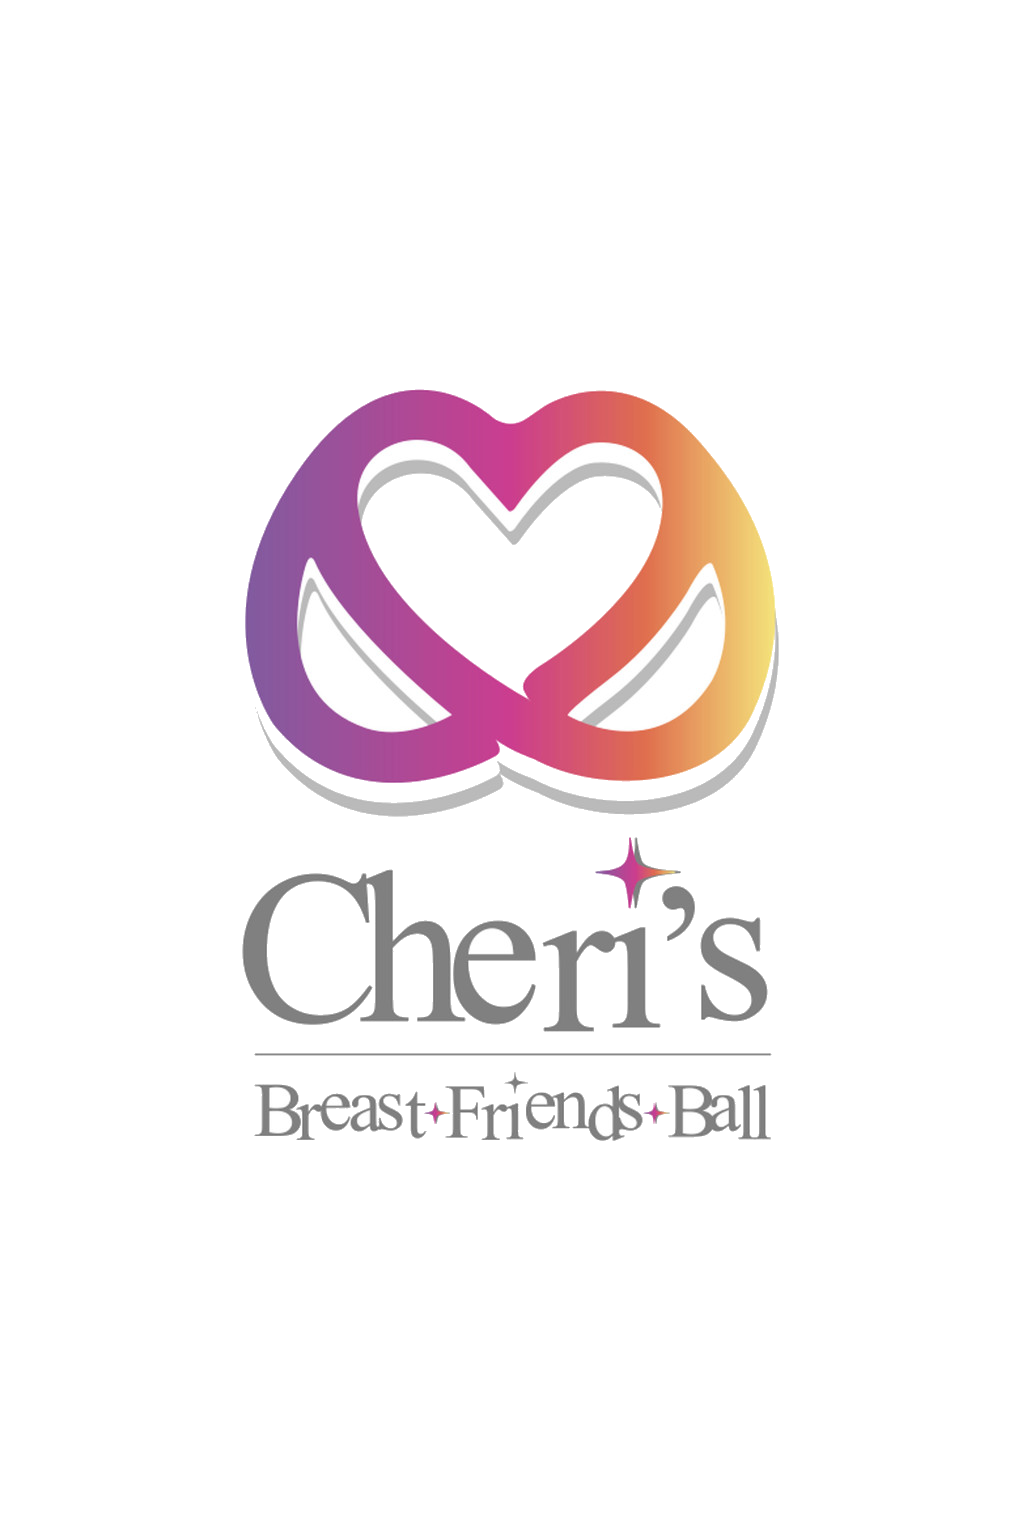 Cheri charity event .png